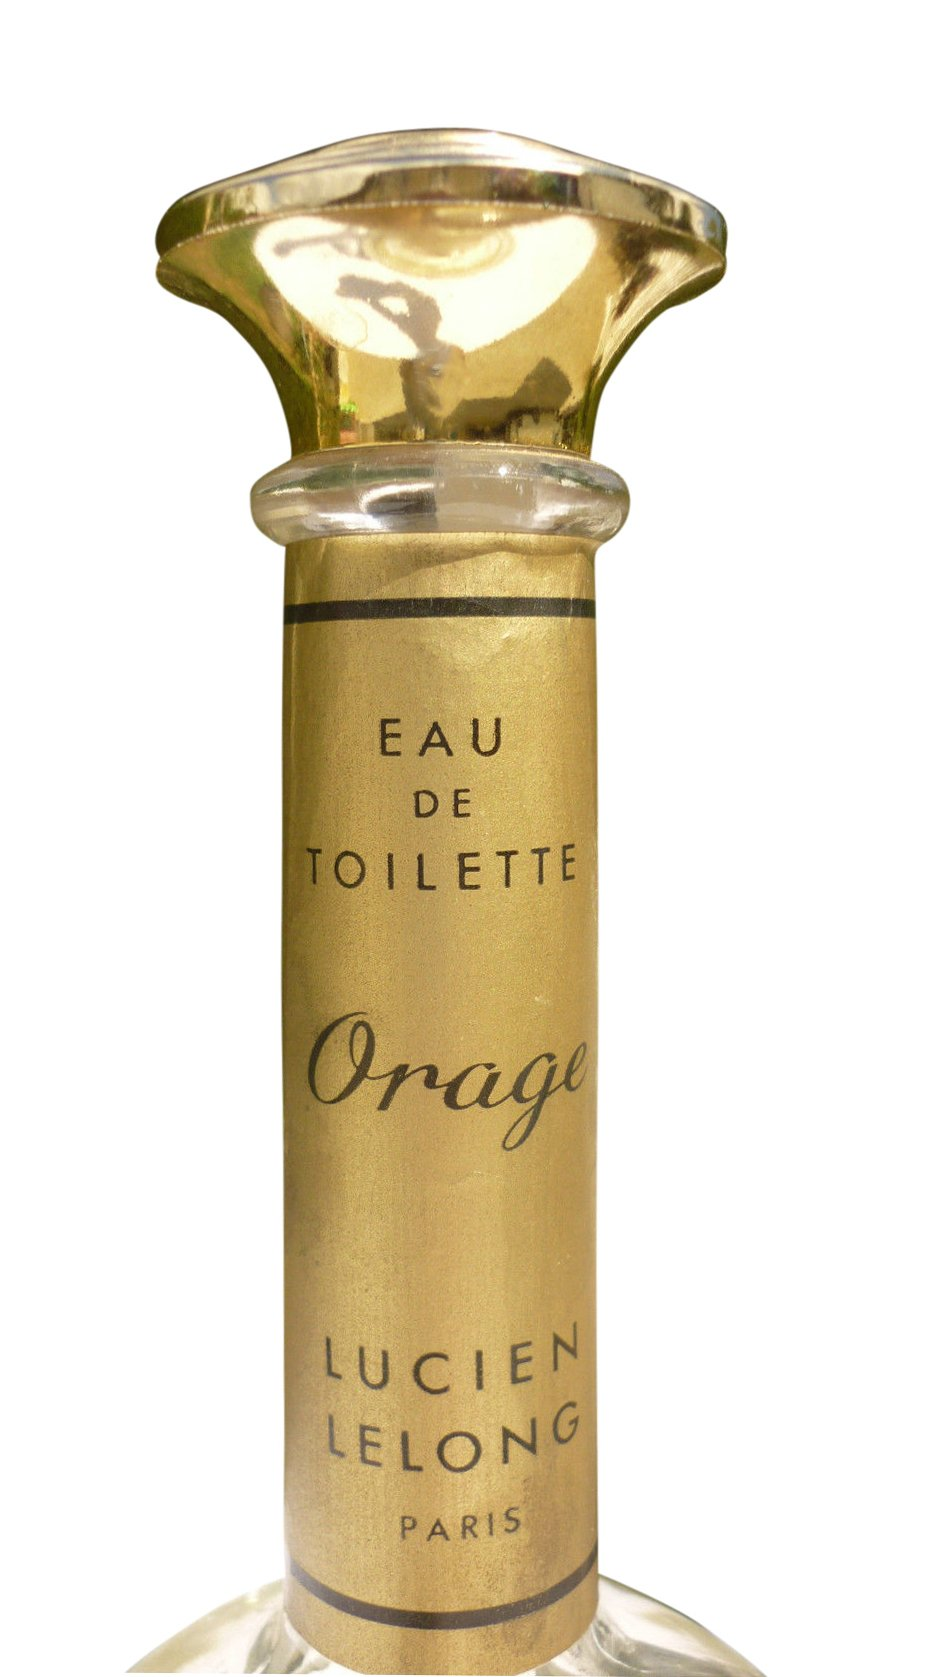 Lucien lelong orage eau de toilette reviews and rating for Arrivee d eau toilette